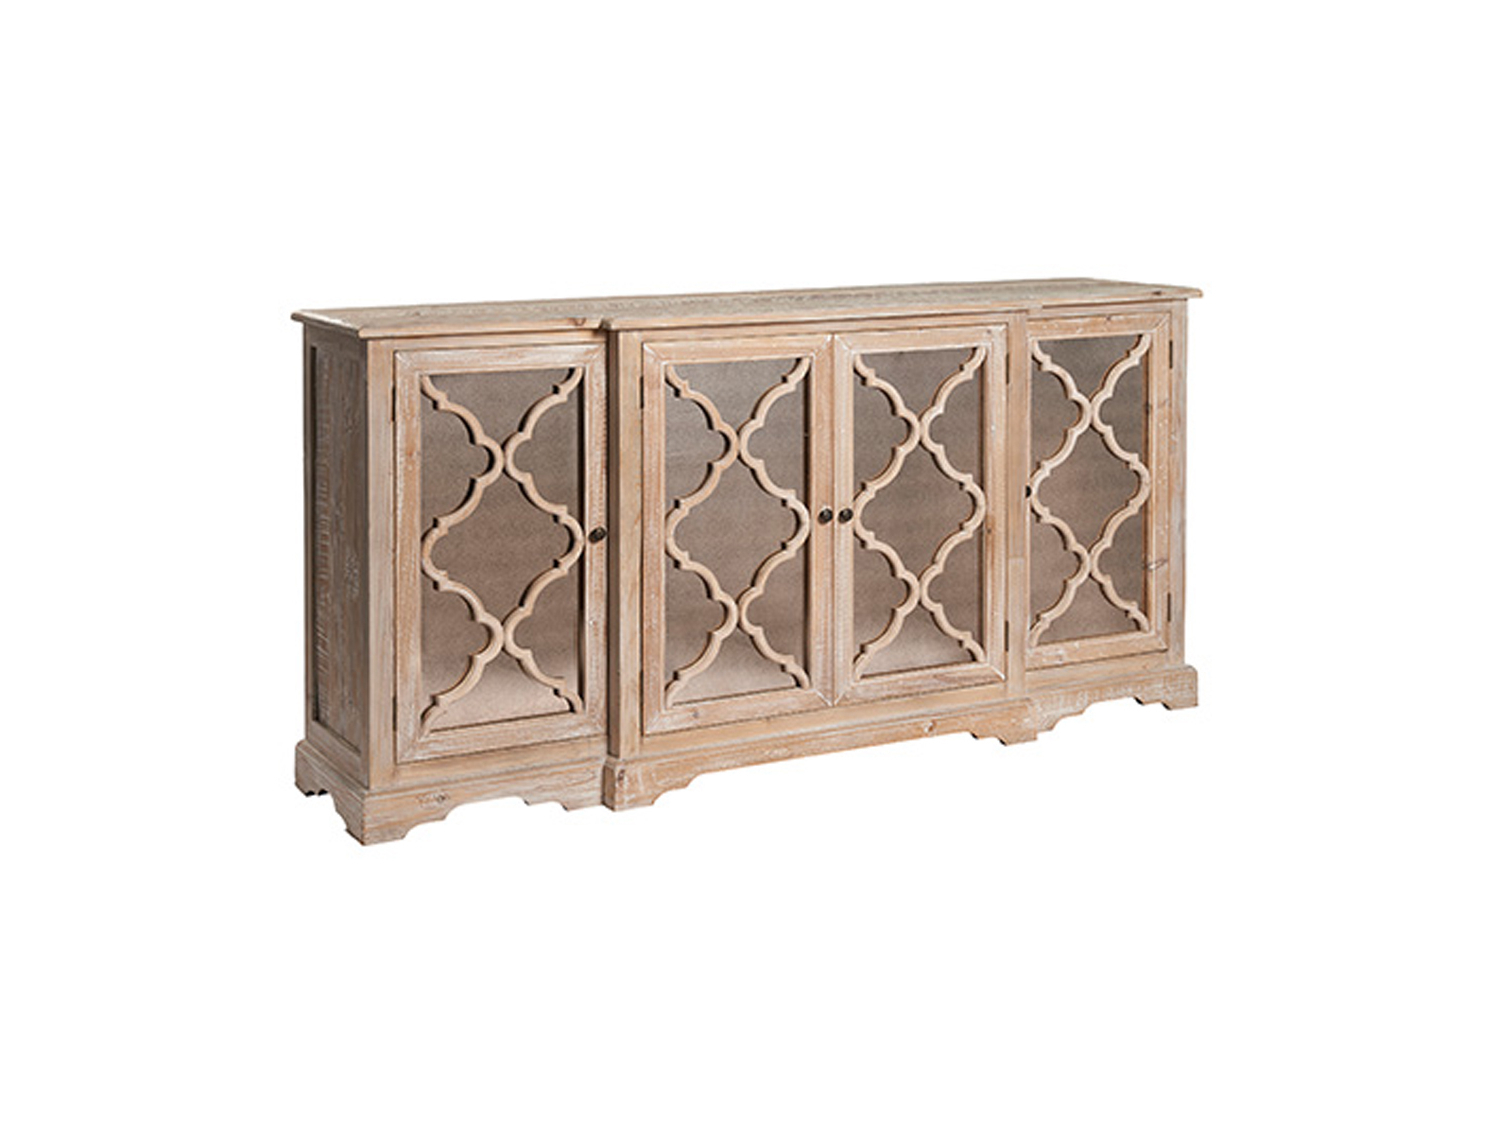 Acepello Lowery Four Door Sideboard From Dansk With Most Up To Date Ruskin Sideboards (Gallery 14 of 20)